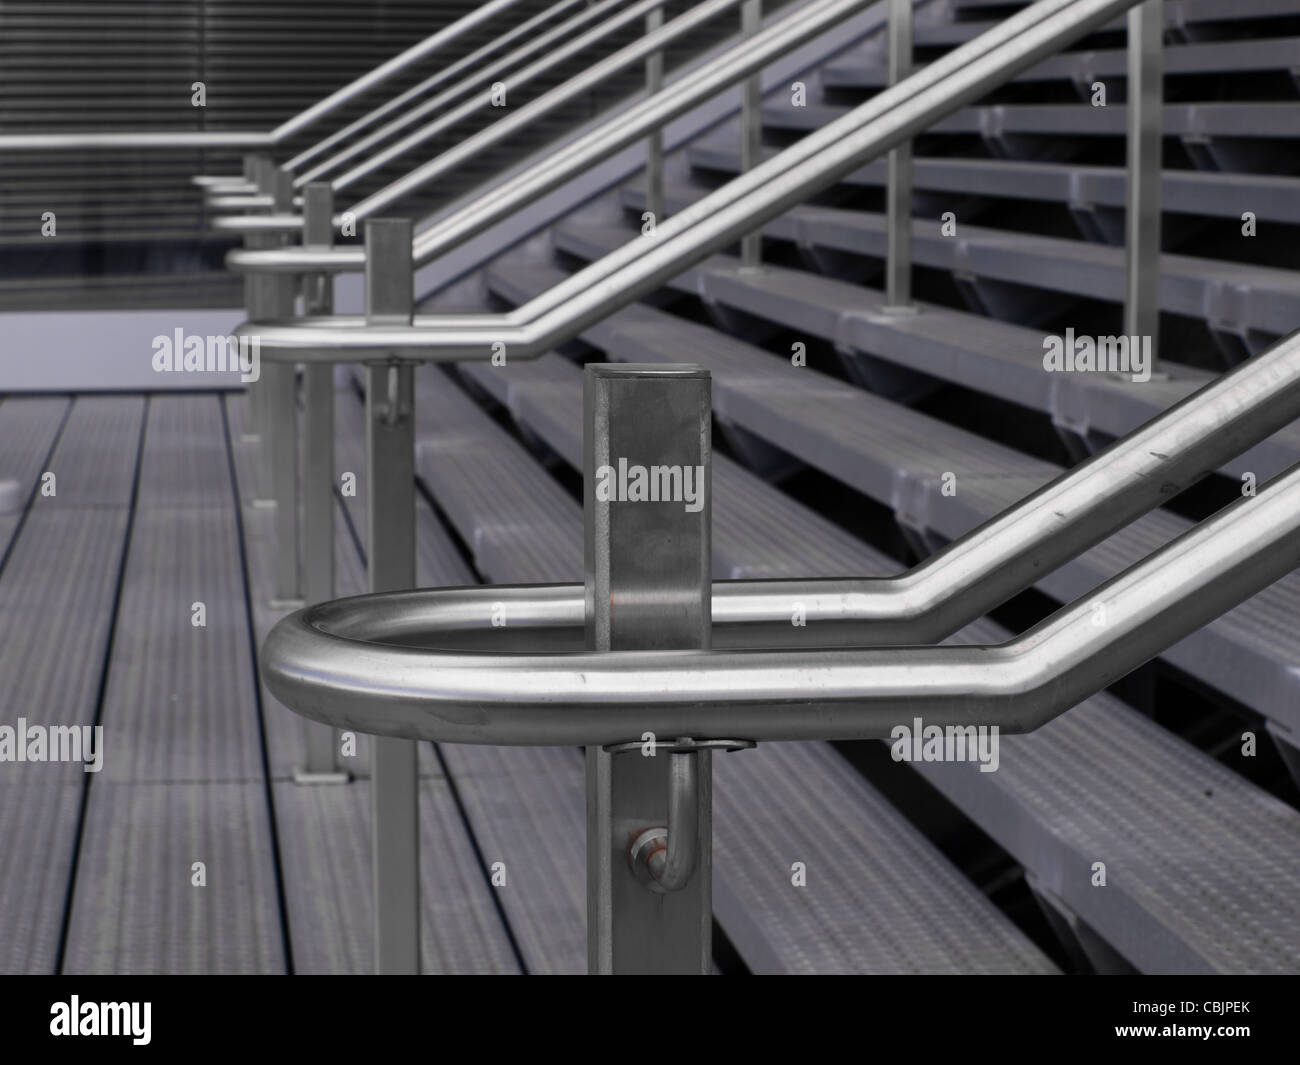 Contemporary handrail detail at the Colorado Convention Center in Downtown Denver. - Stock Image